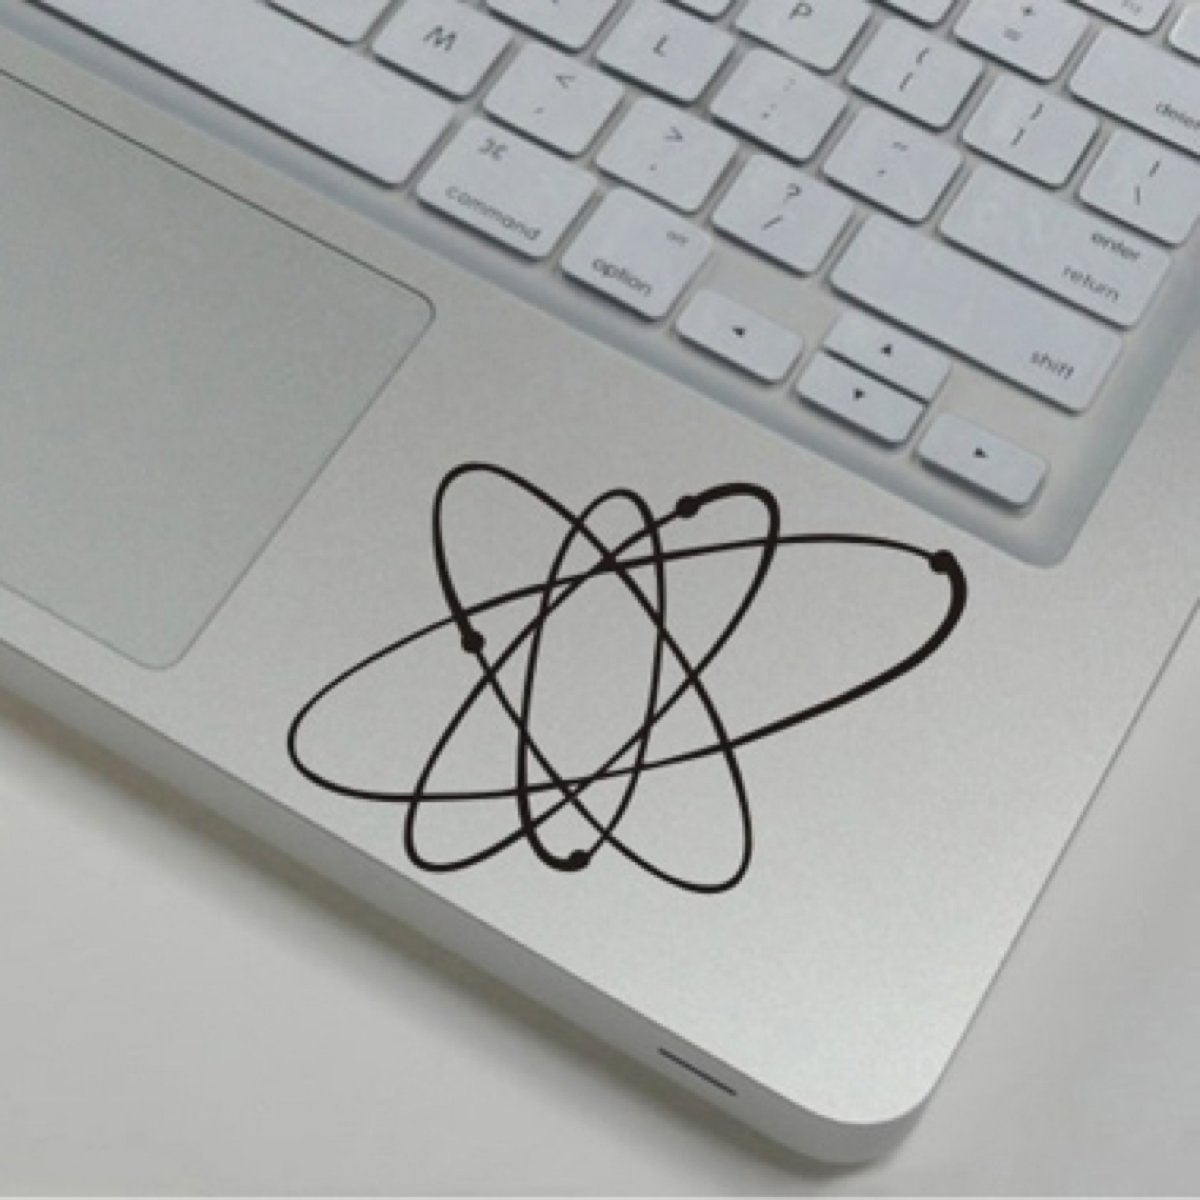 Atoom - MacBook Wrist Decals Skins Stickers Pro / Air